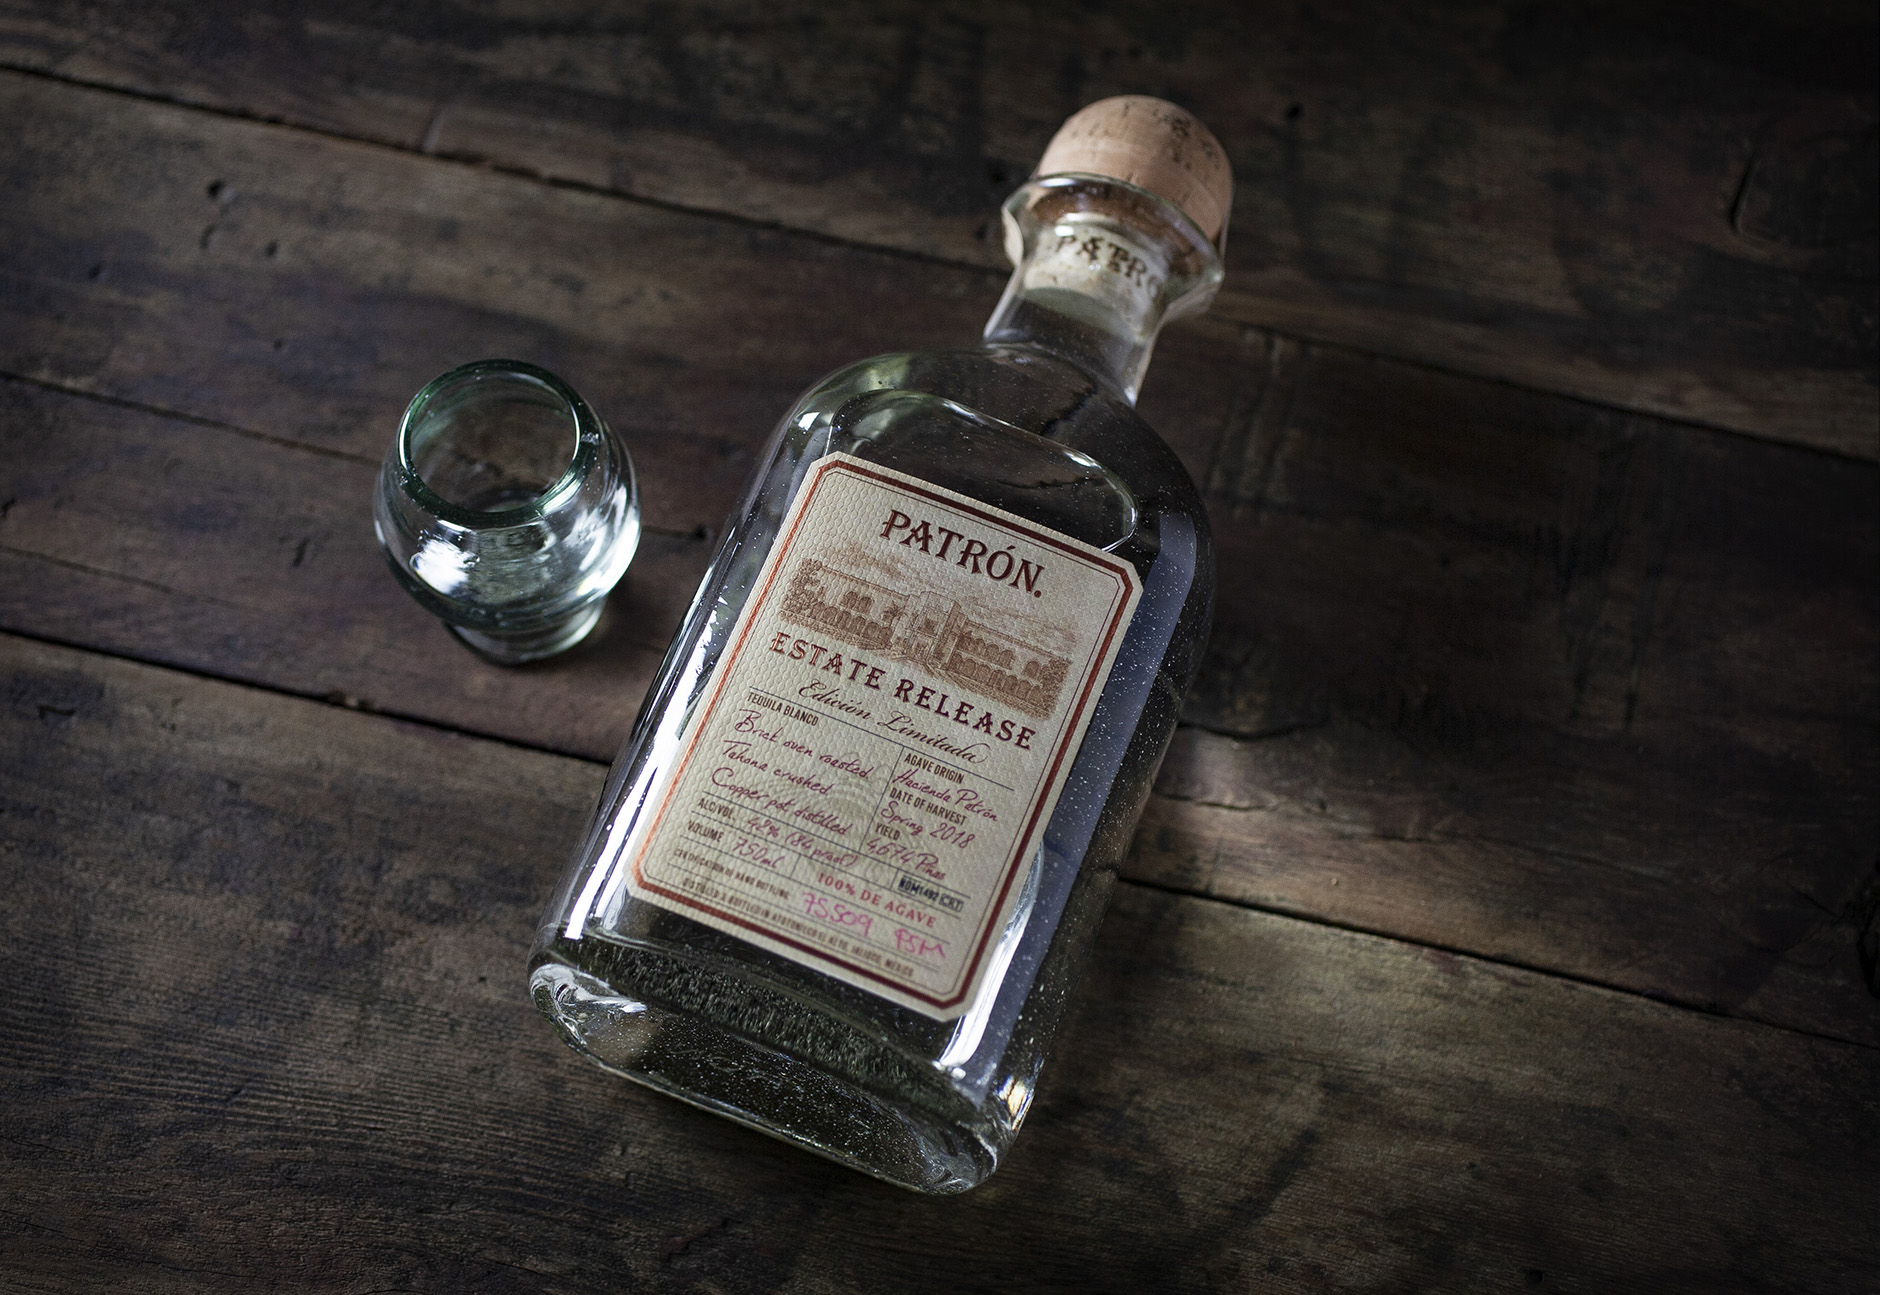 Patrón Estate Release Tequila Package design